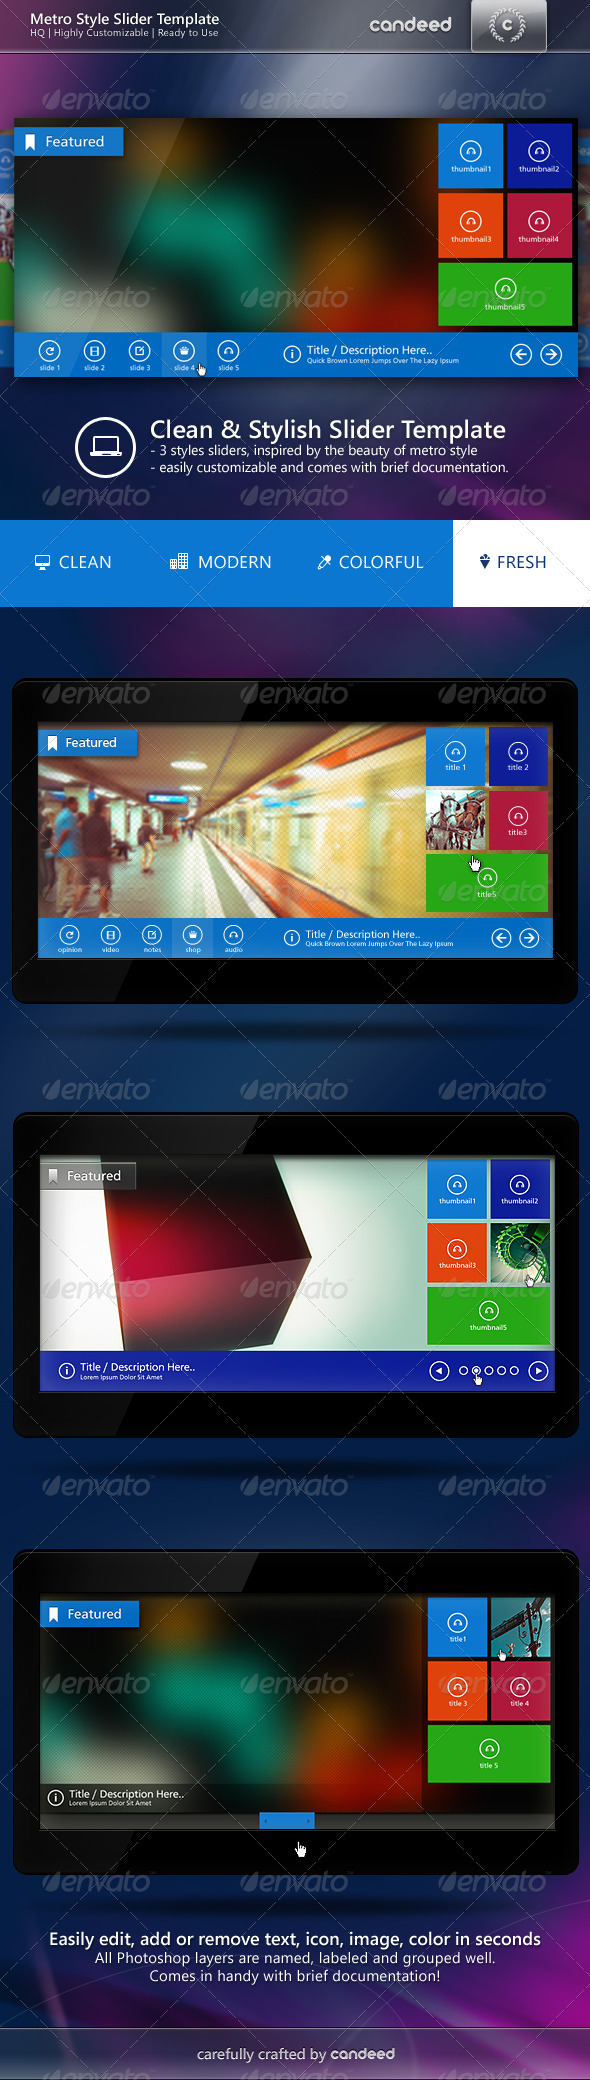 GraphicRiver Metro Style Slider Template 4015785